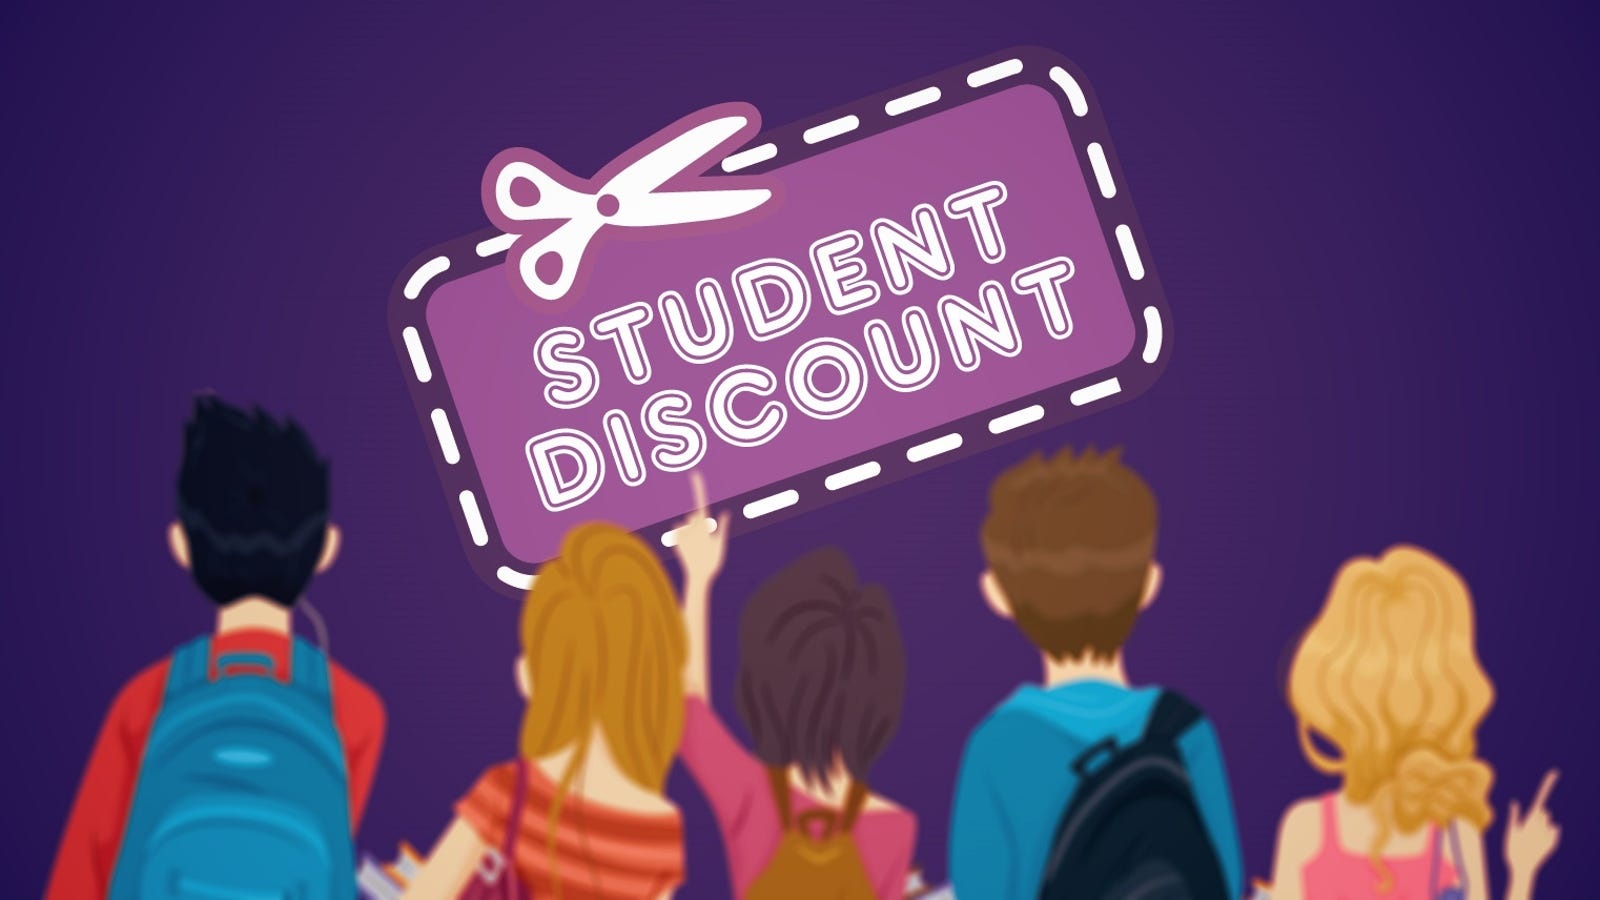 STYLEBOP STUDENT DISCOUNT